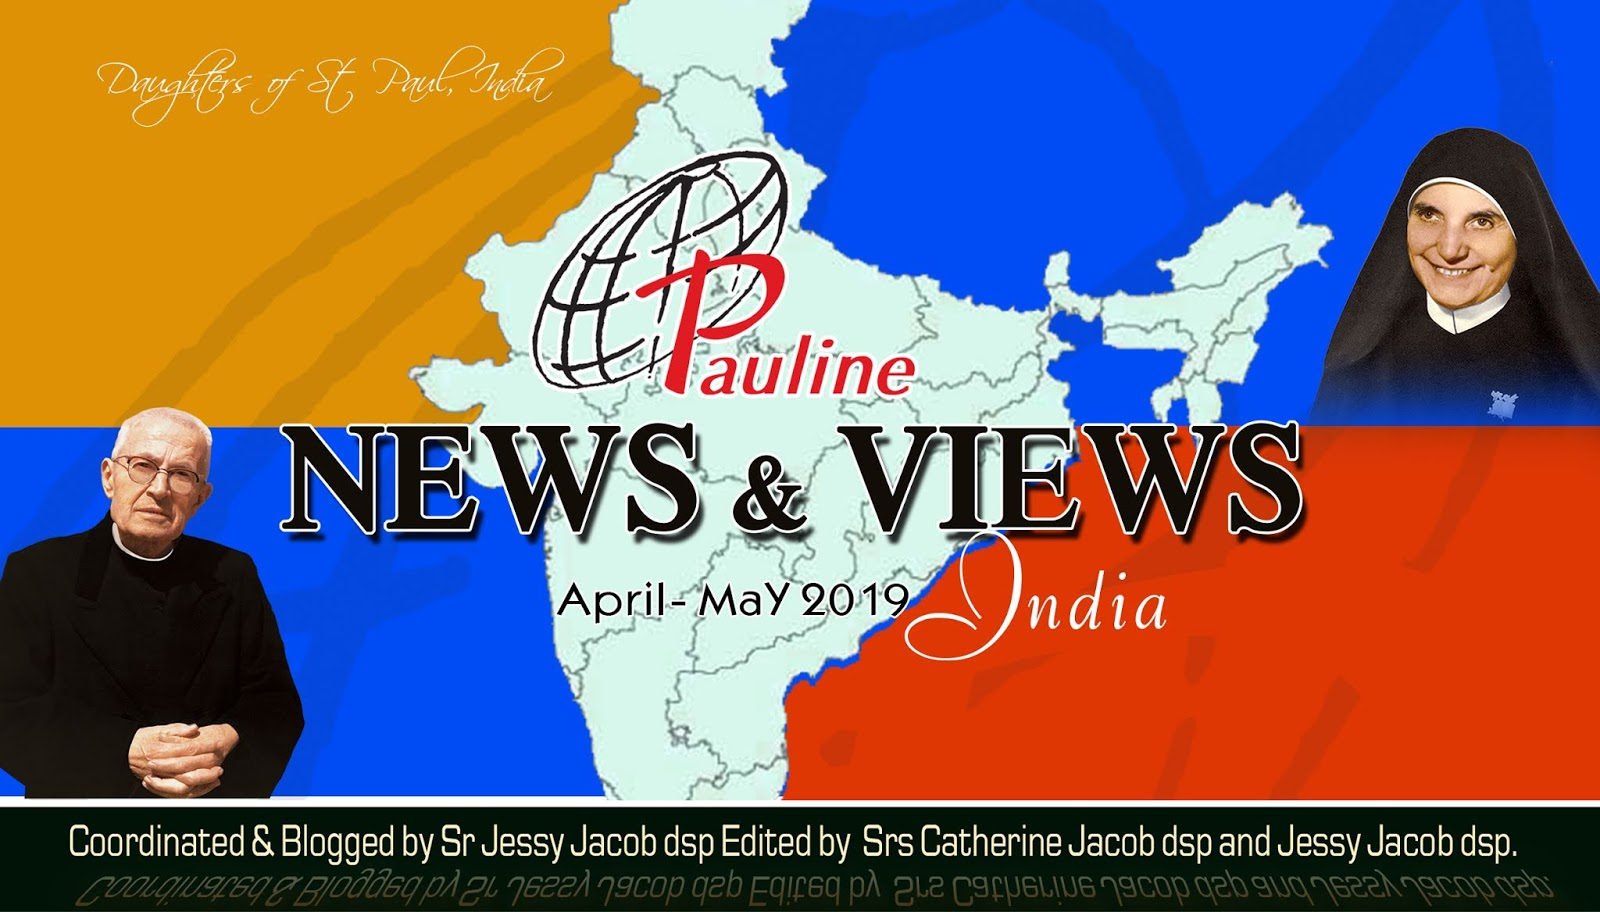 Pauline News and Views